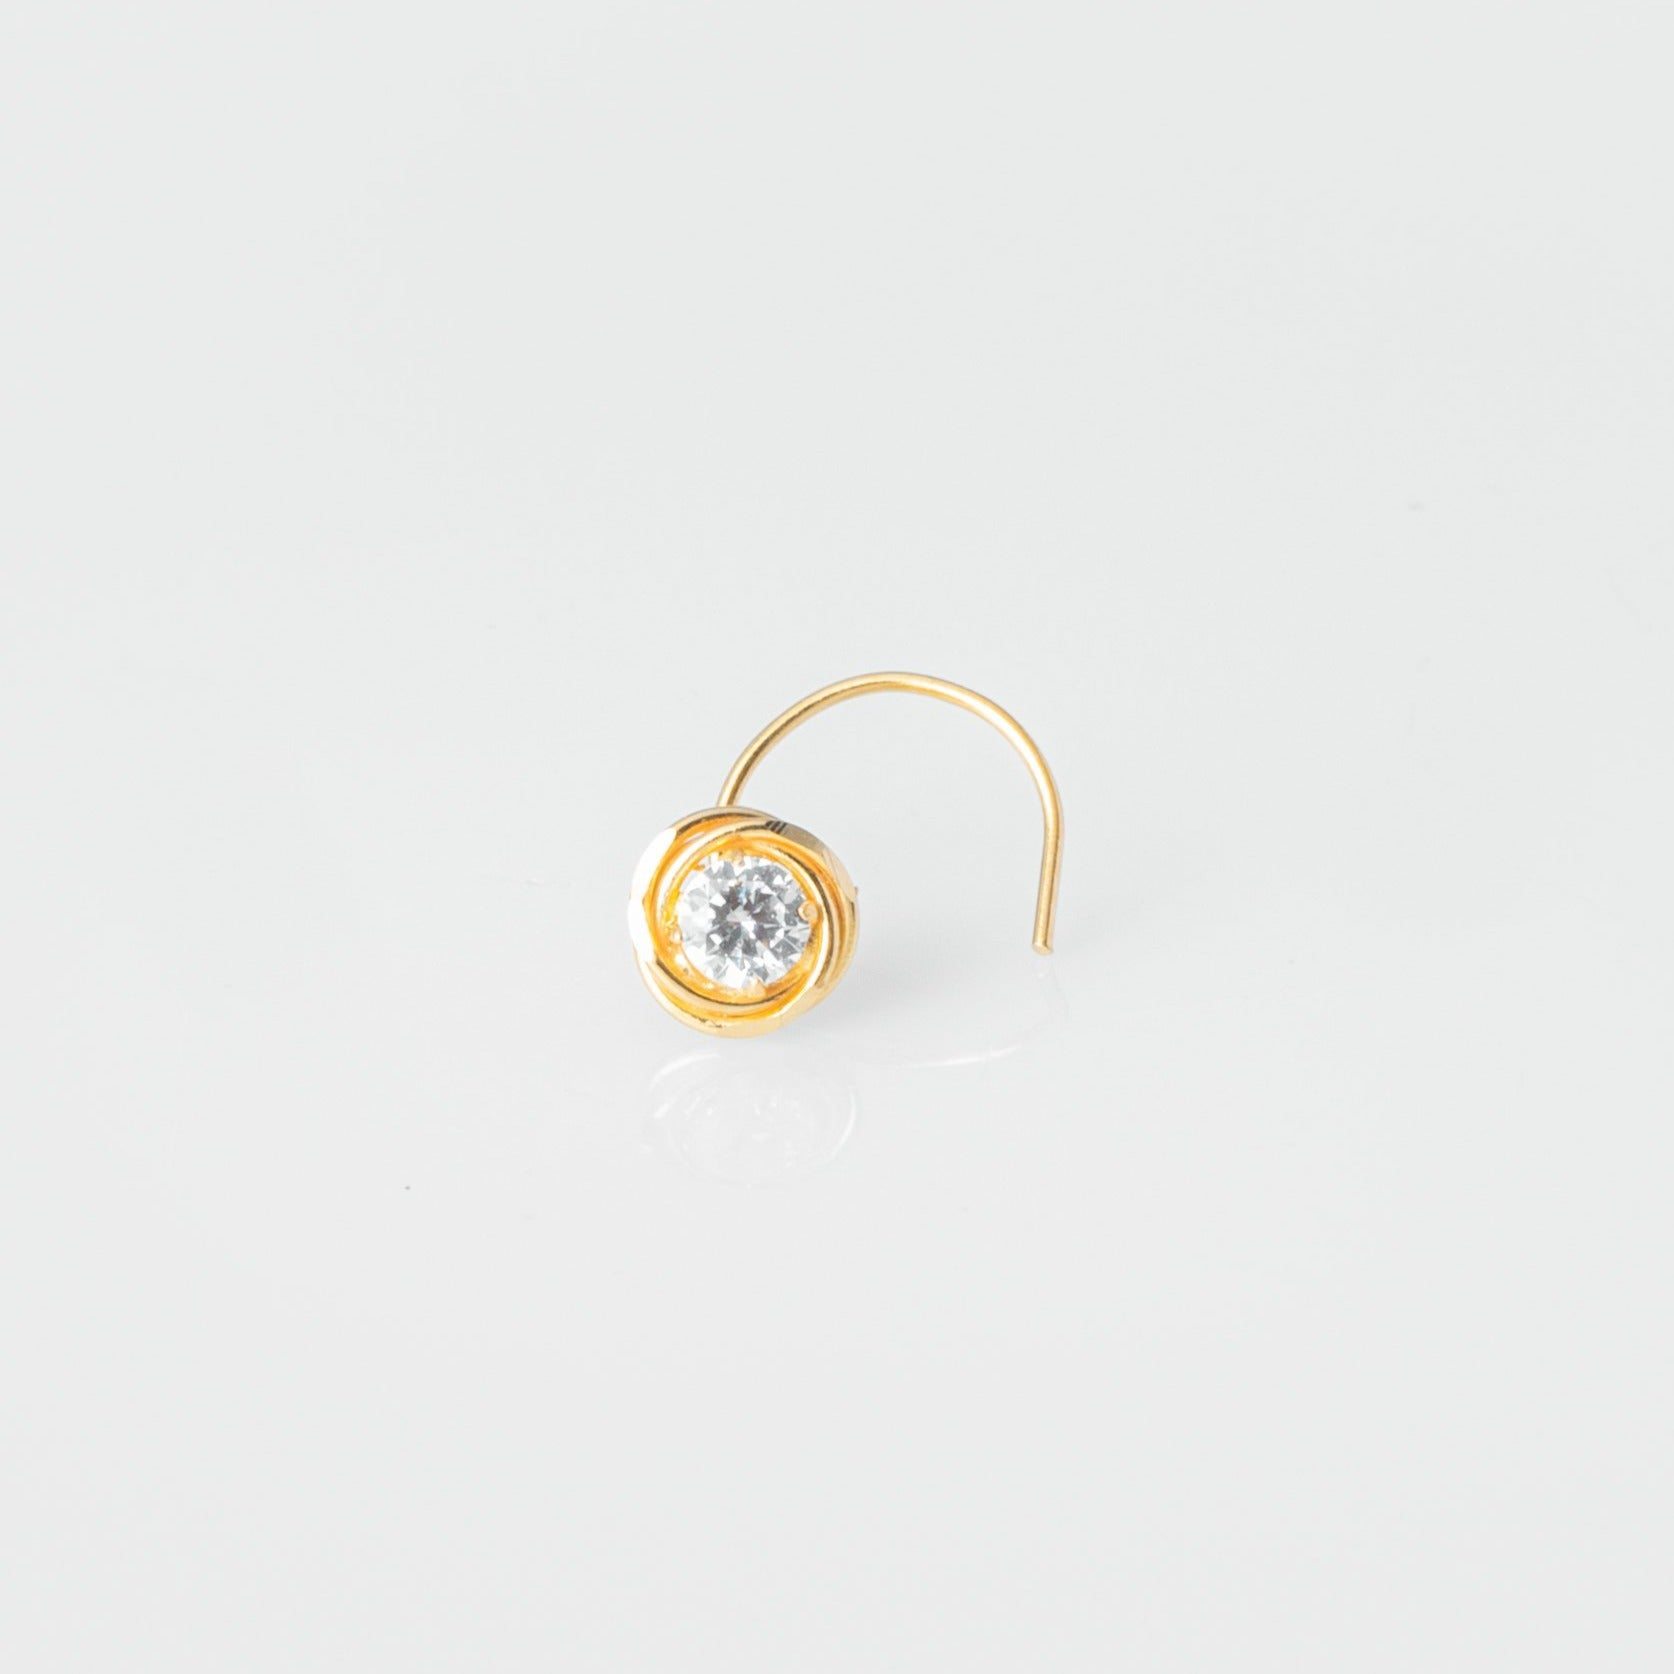 18ct Yellow Gold Wire Coil Back Nose Stud with Diamond Cut Design (4.15mm - 5.25mm) NIP-5-750